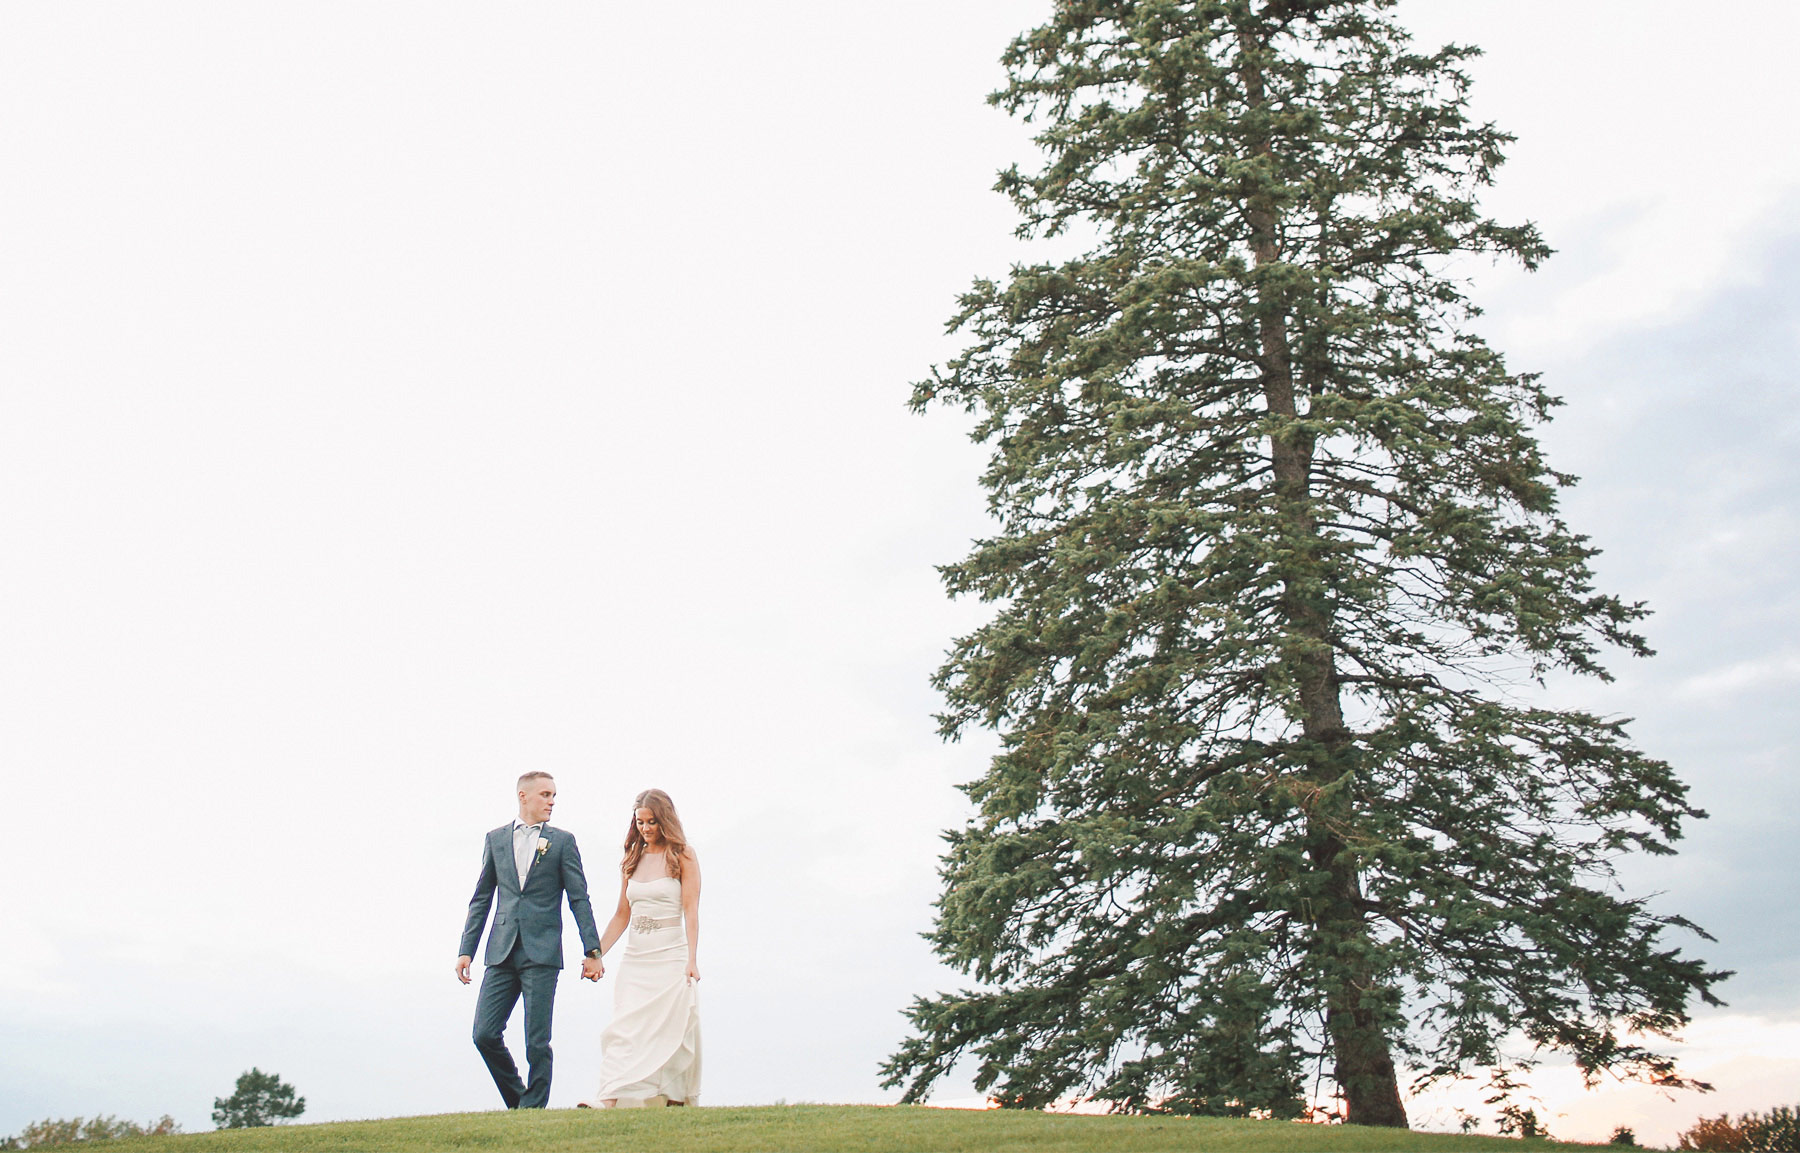 26-Dellwood-Minnesota-Wedding-Photographer-by-Andrew-Vick-Photography-Summer-Country-Club-Reception-Bride-Groom-Golf-Course-Vintage-Sarah-and-Landon.jpg